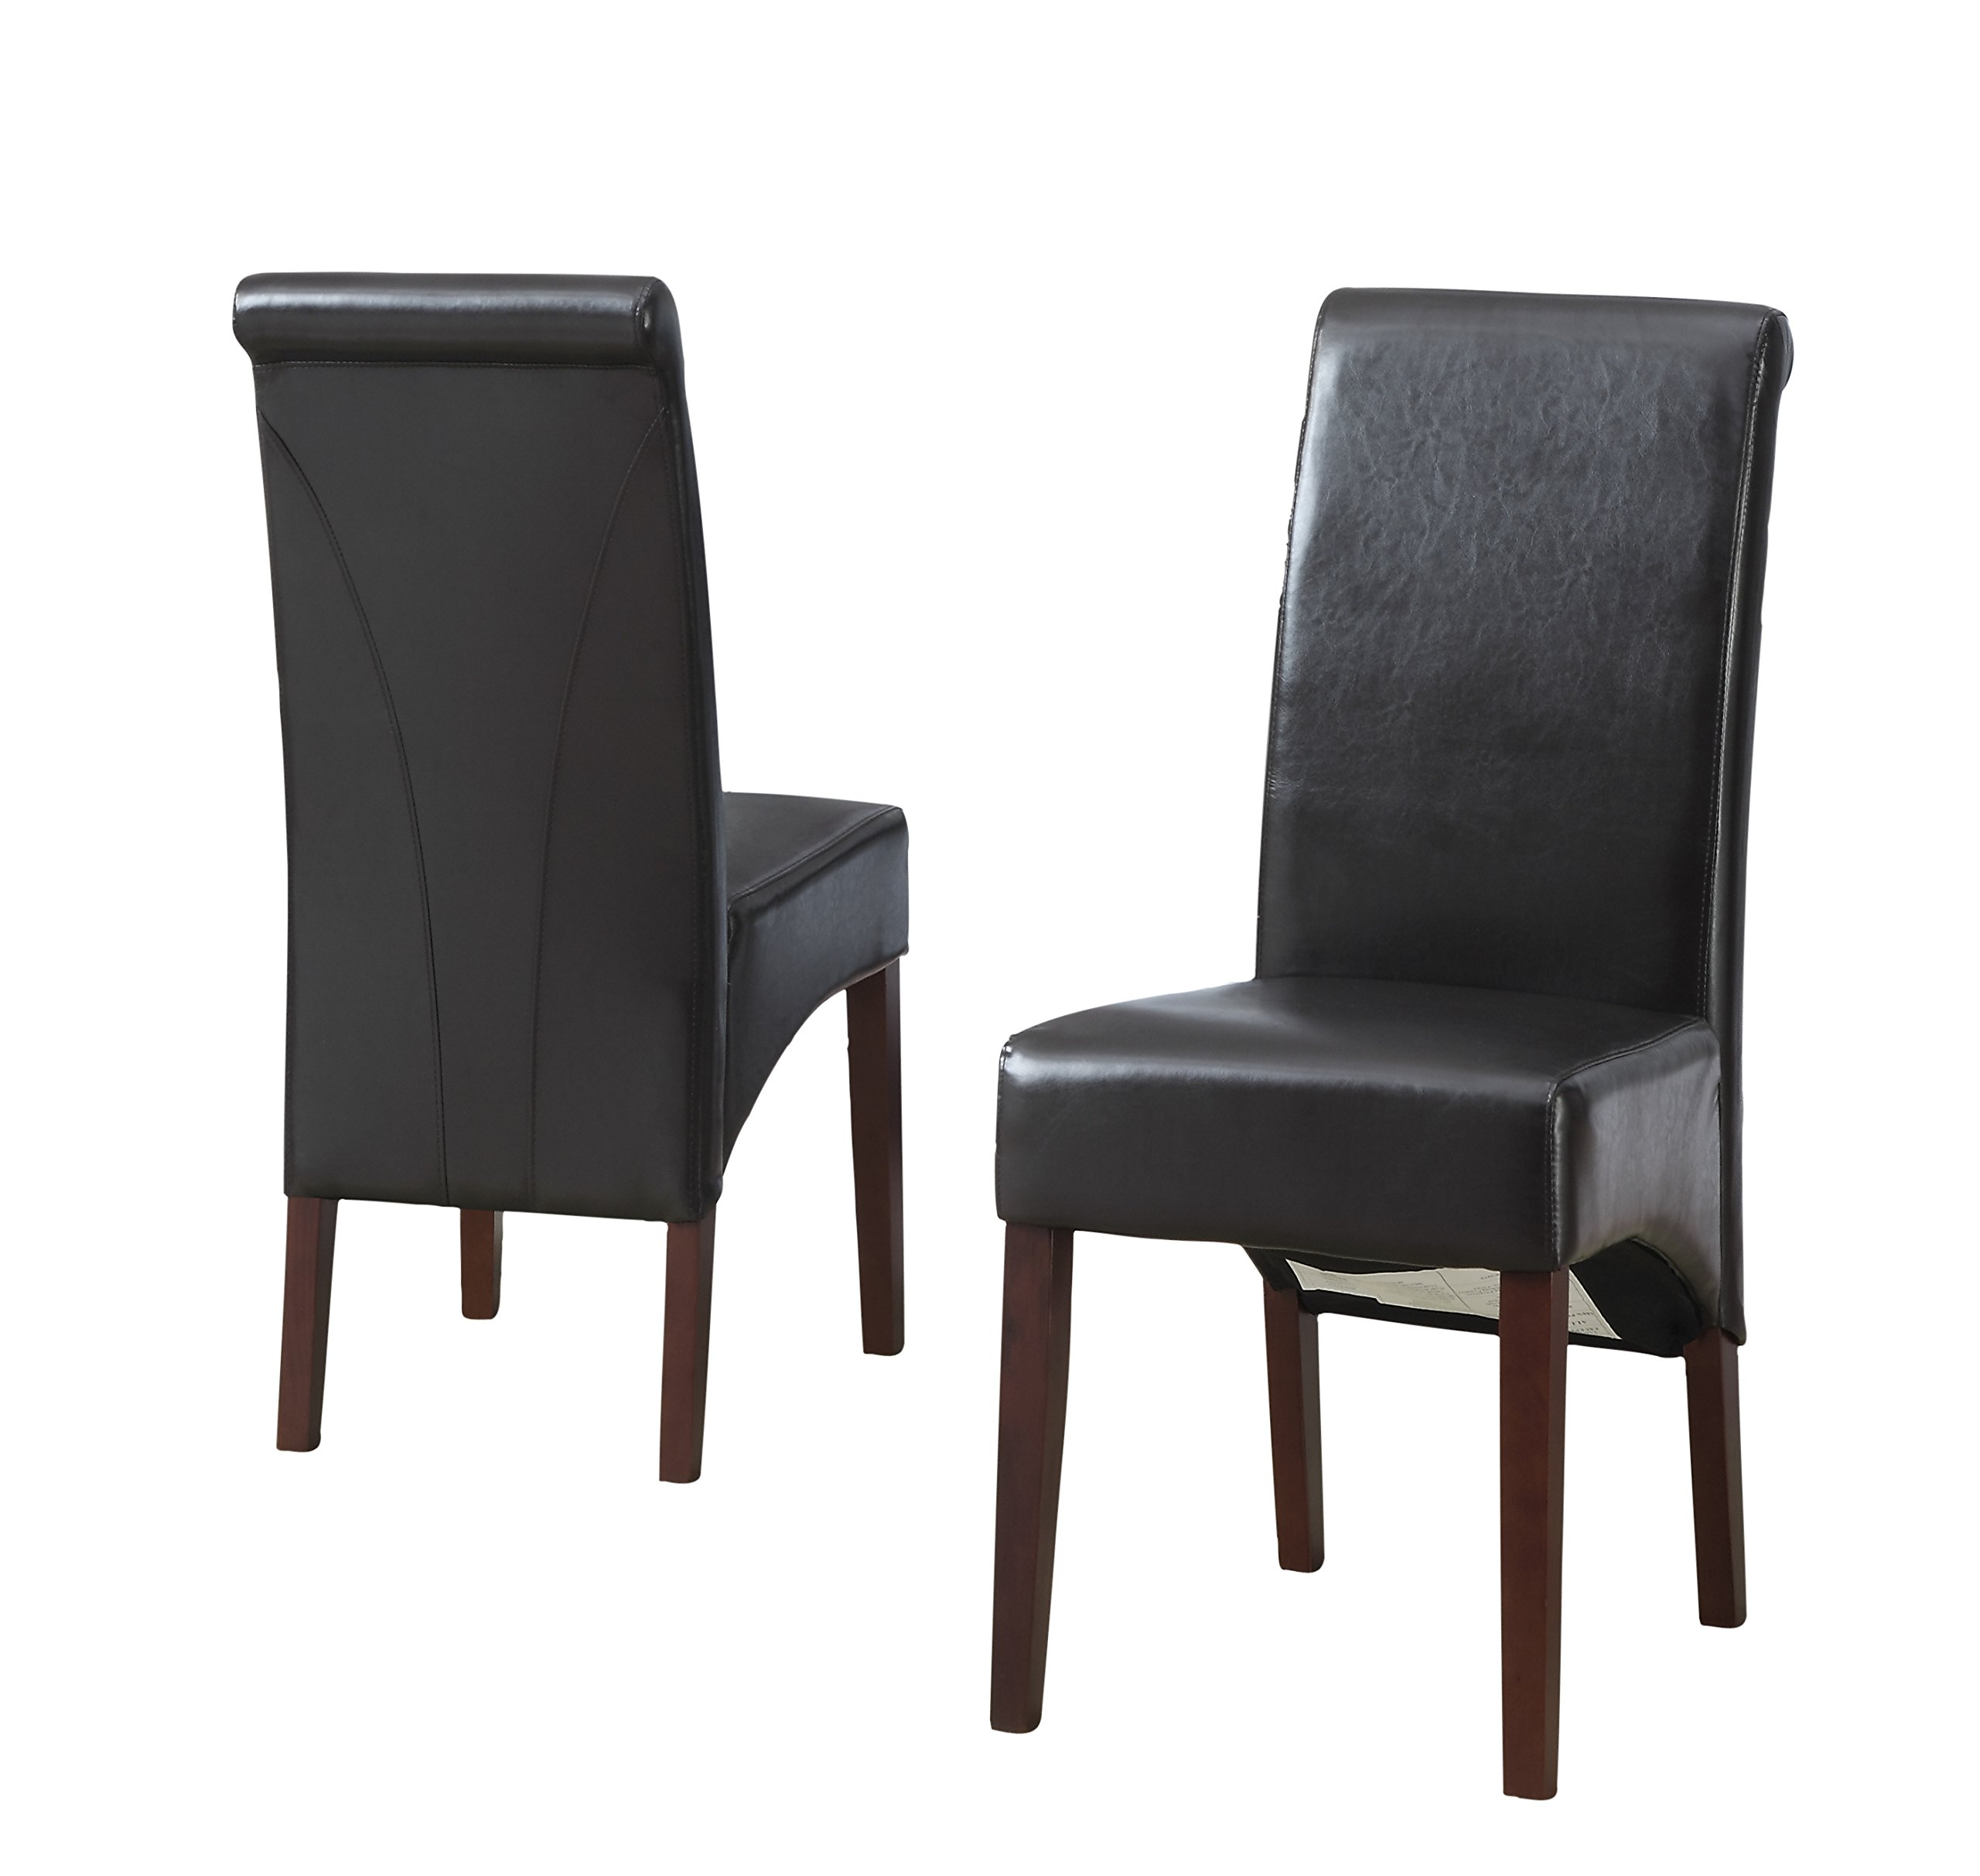 Simpli Home Avalon Faux Leather Deluxe Parson Chairs, Brown (Set of 2)